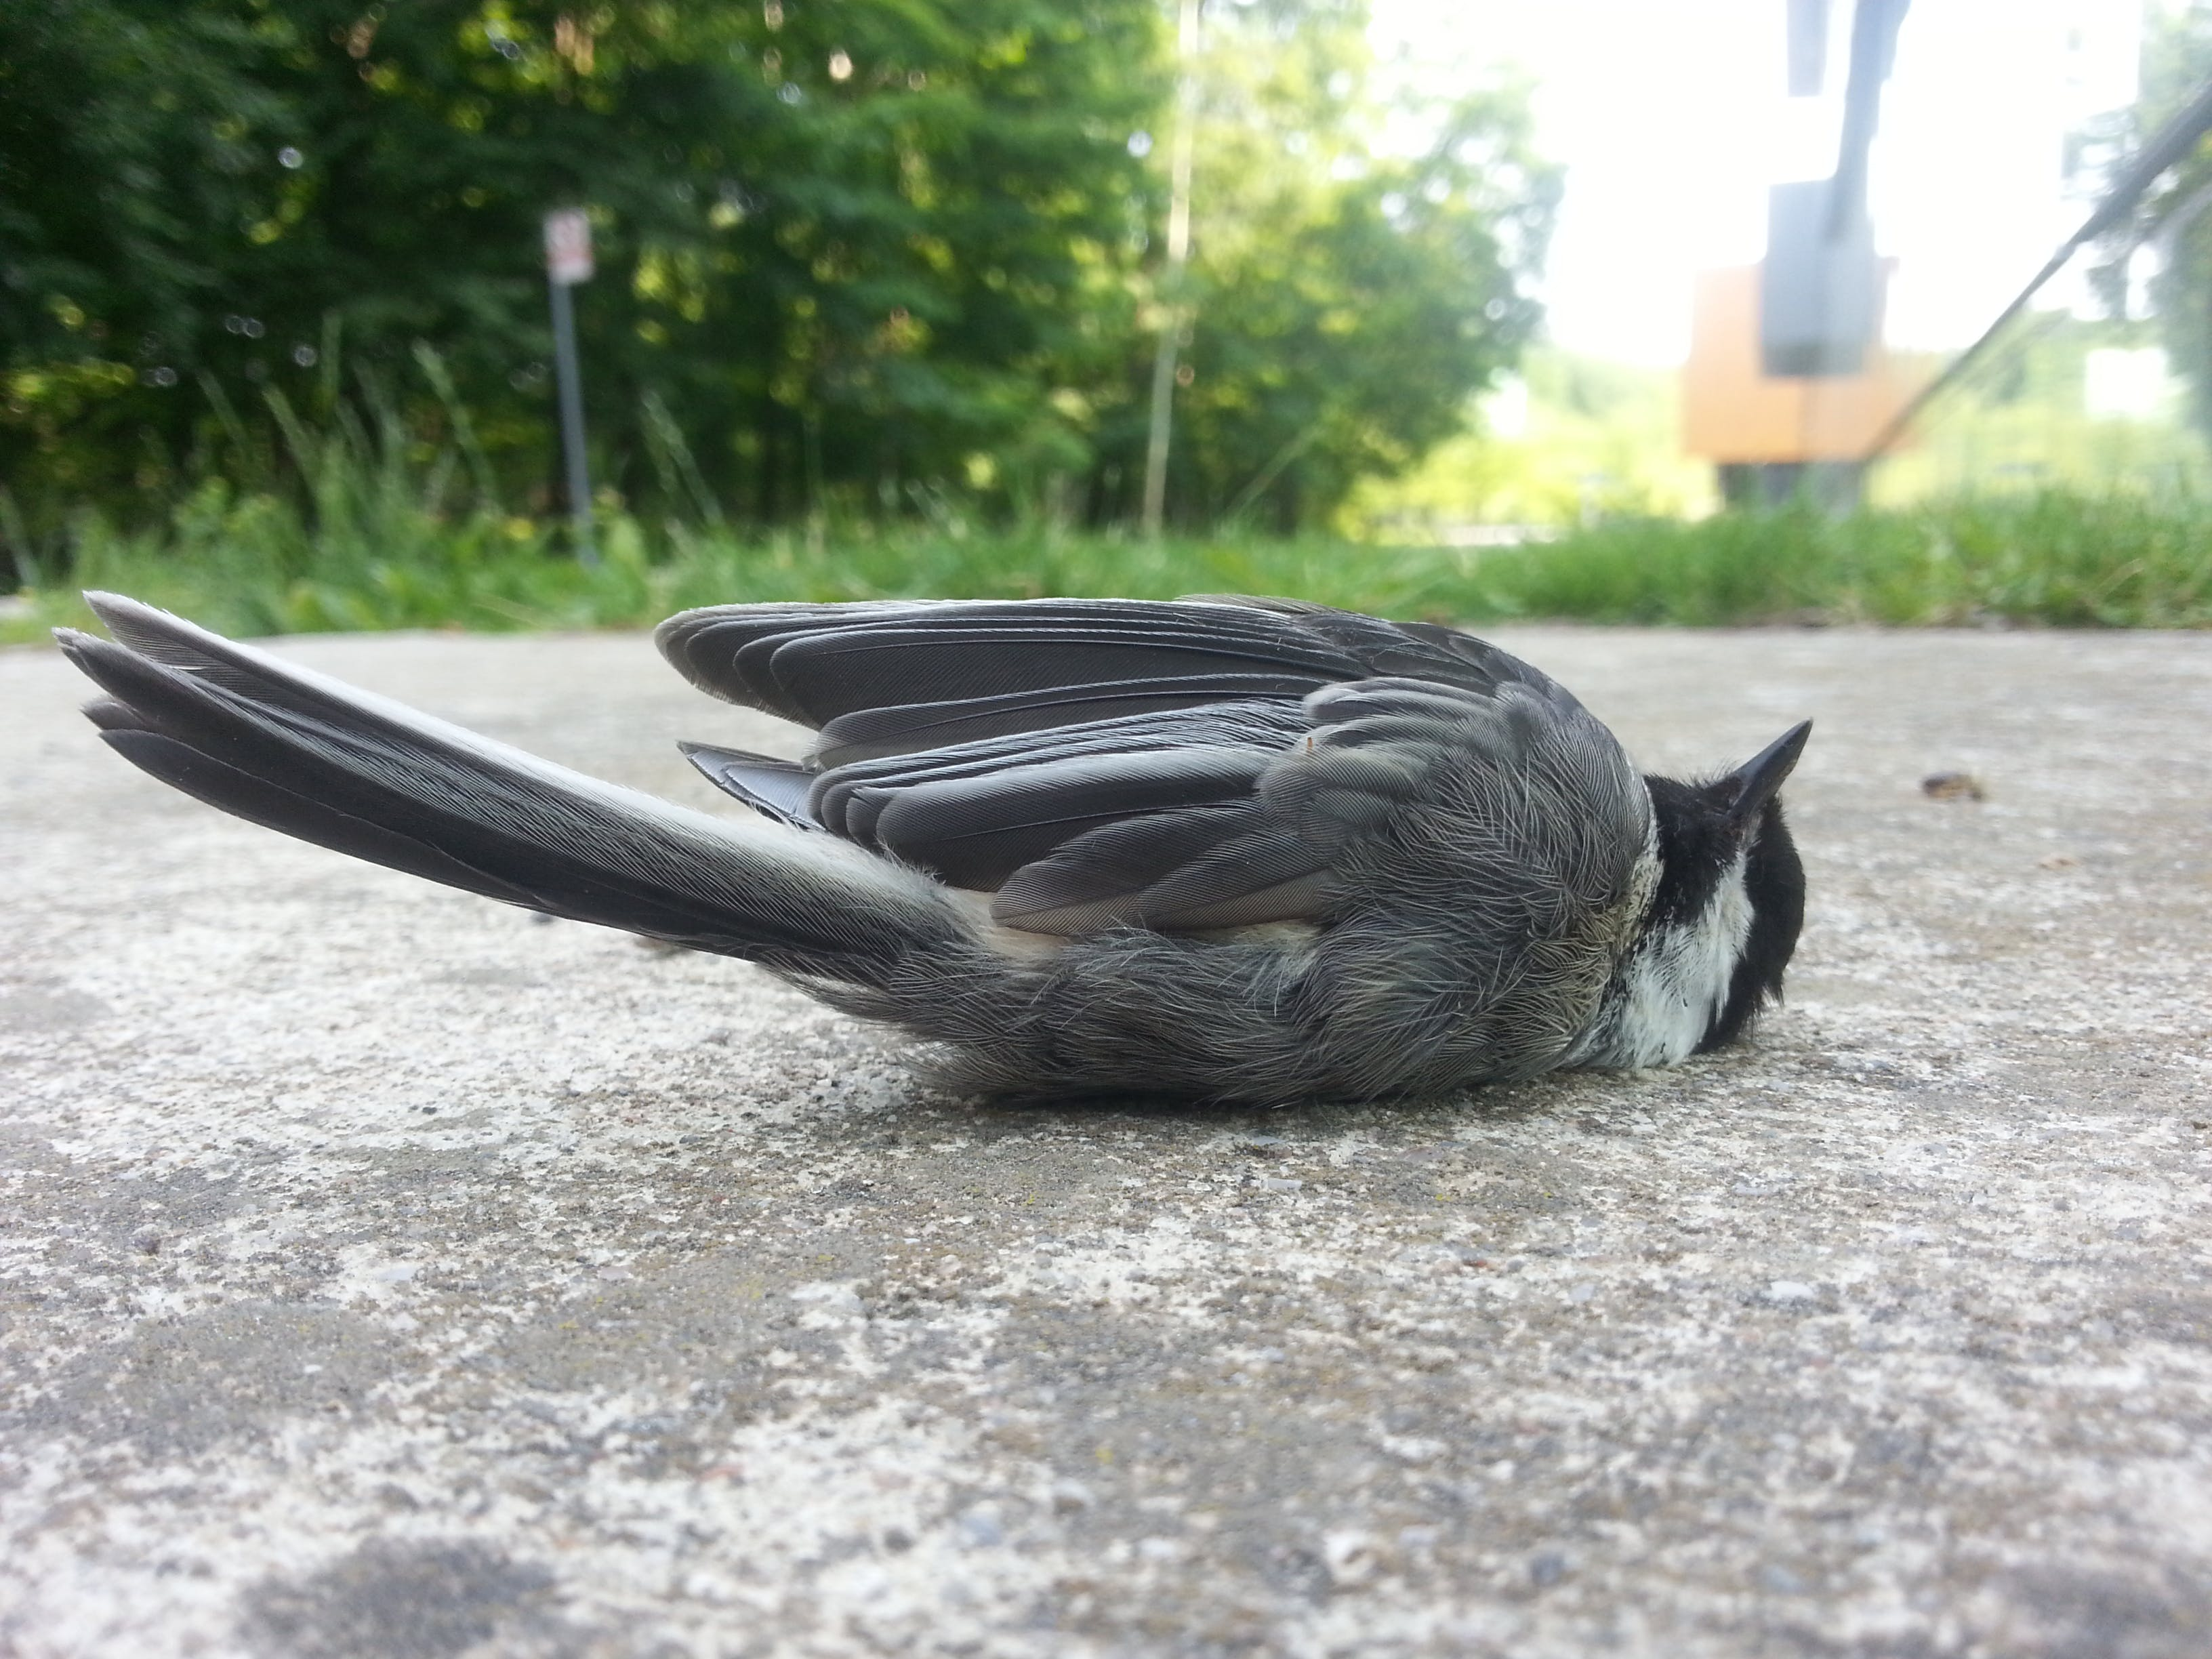 A songbird killed by a collision with a window